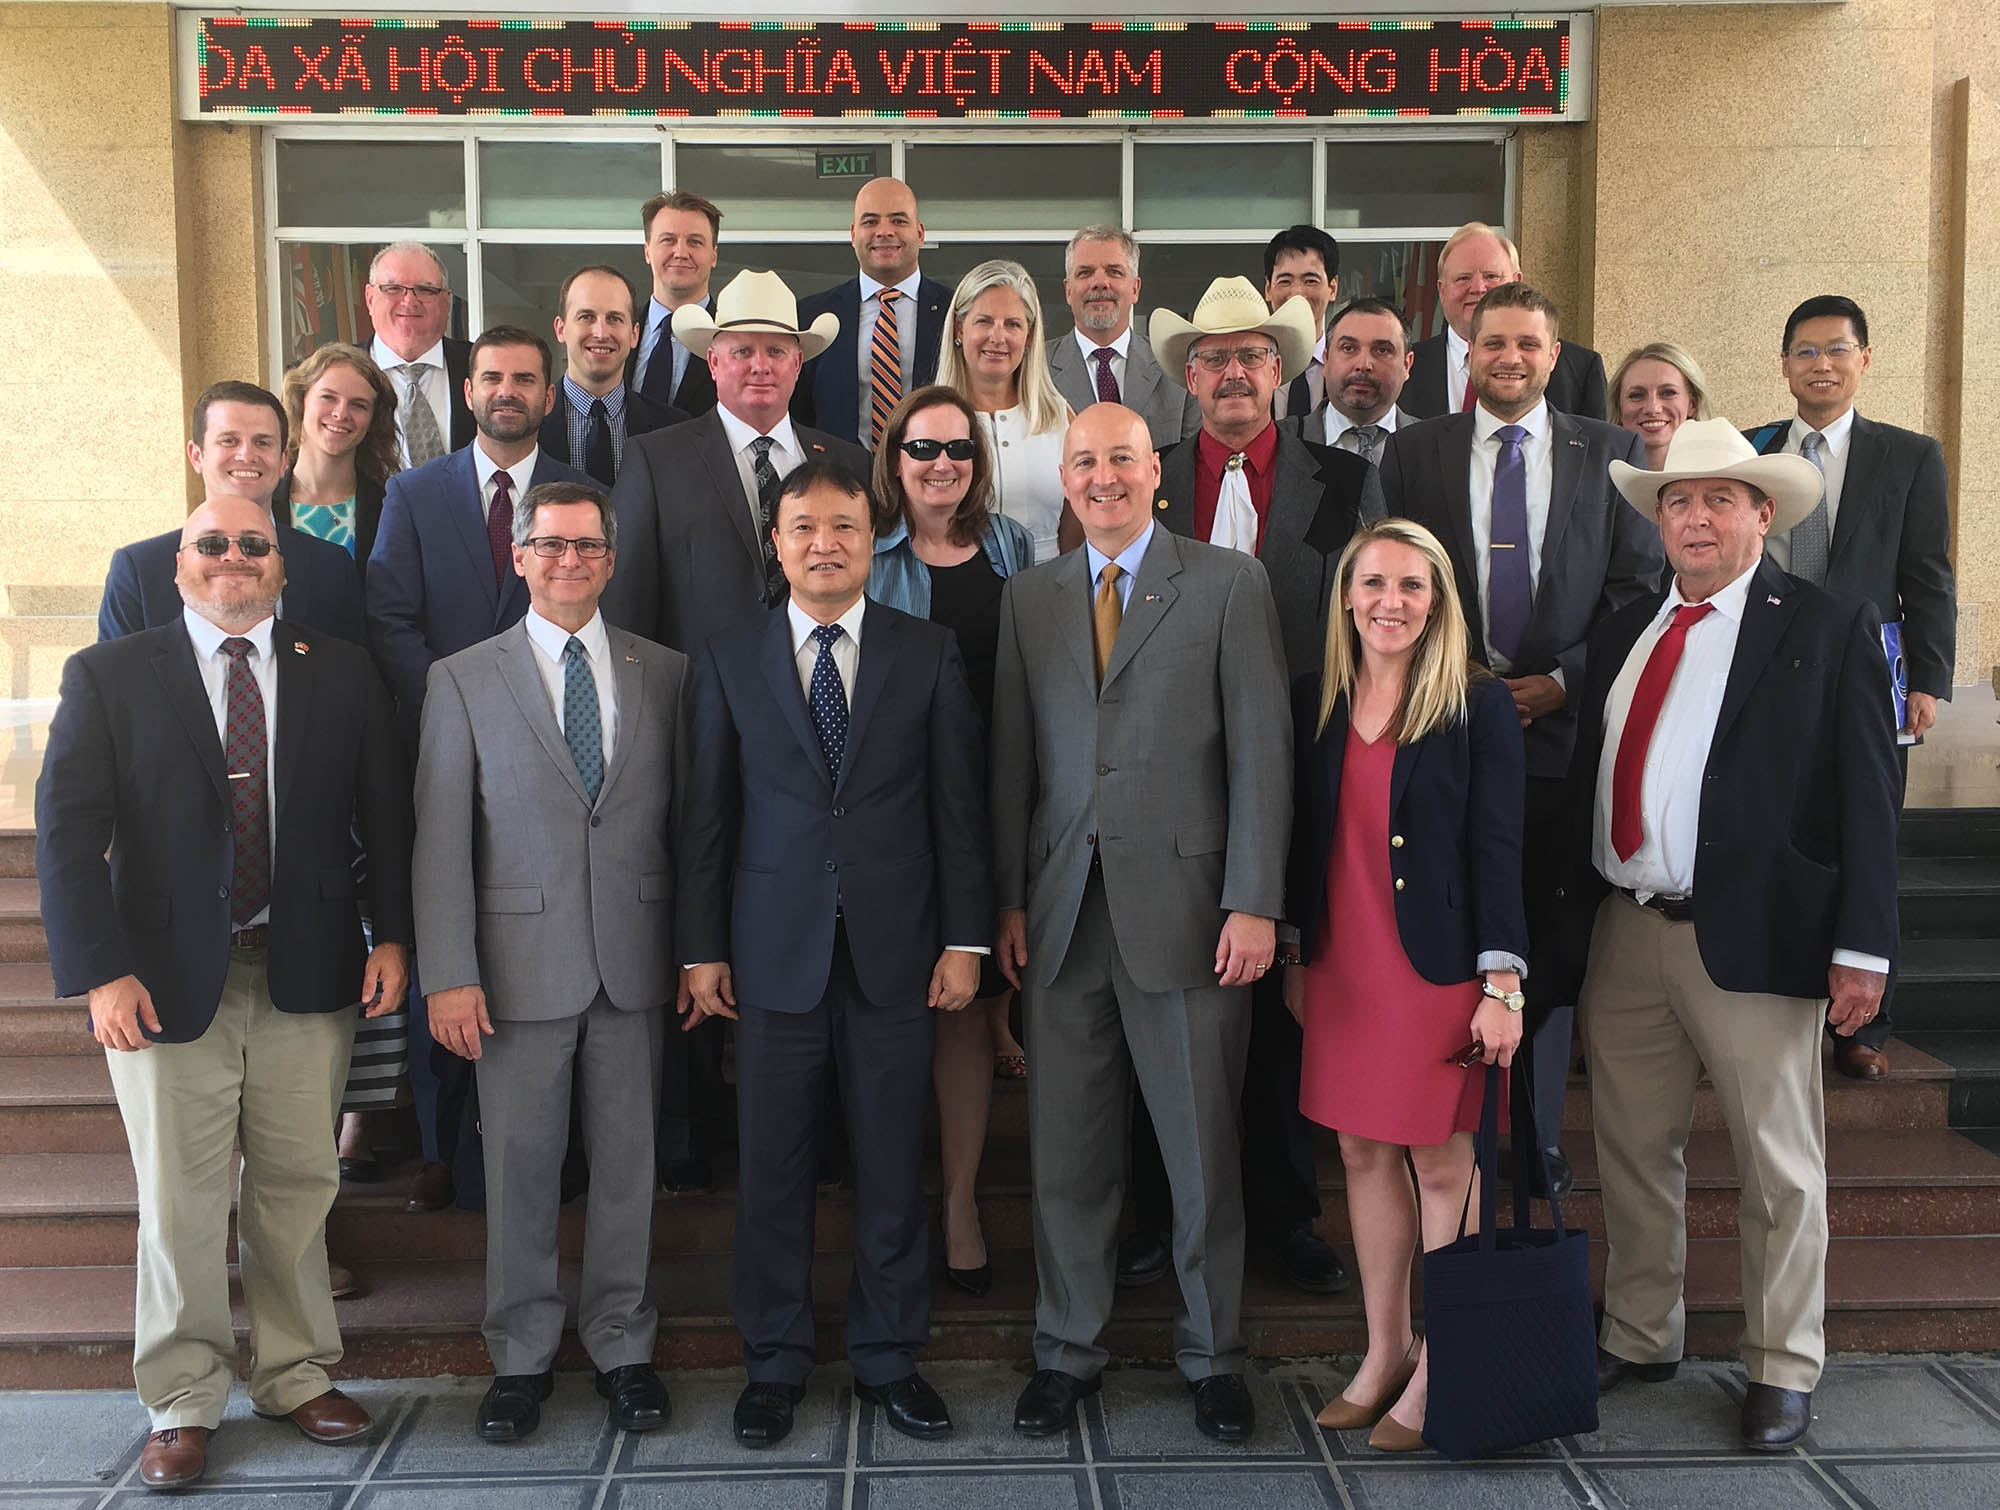 Gov. Pete Ricketts led a trade mission last month to Vietnam and Japan to promote Nebraska's agricultural products and pitch the state as a top destination for international investment. He'll talk about the trip 3:30 p.m. Nov. 5 in UNK's Copeland Hall Room 142 as part of Geography Awareness Week. (Courtesy photo)